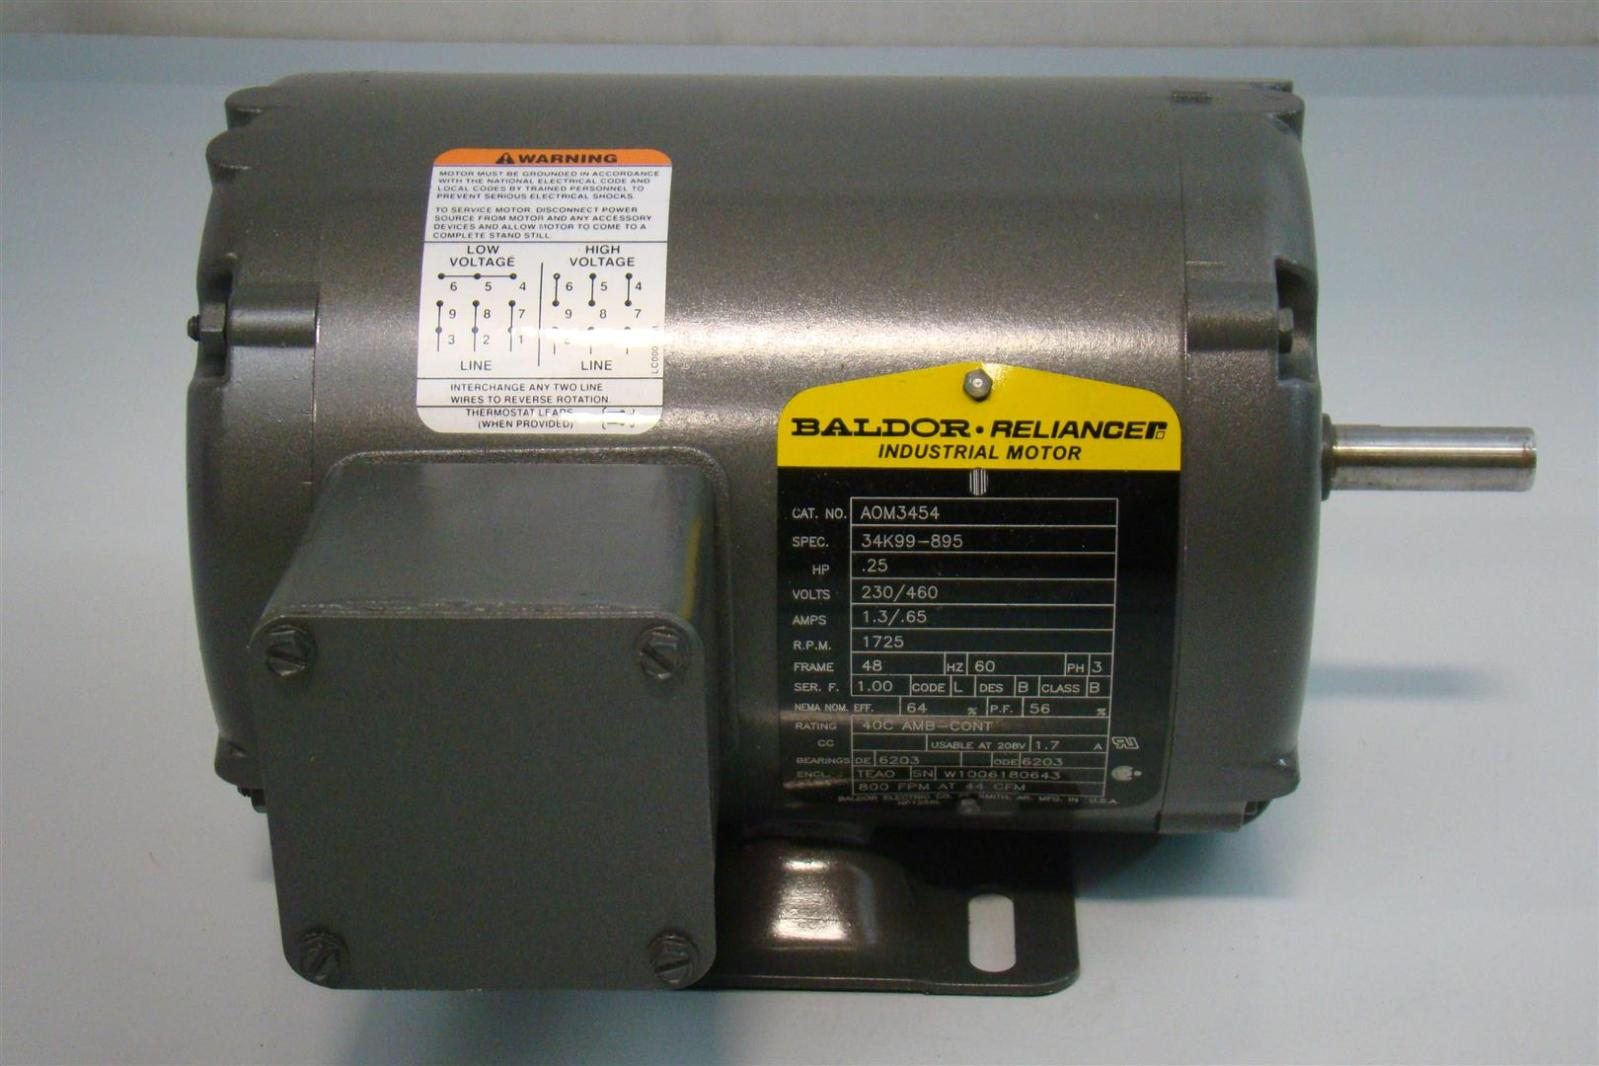 Baldor reliance industrial motor 25hp 1 3 65amps 1725rpm for Baldor industrial motor parts